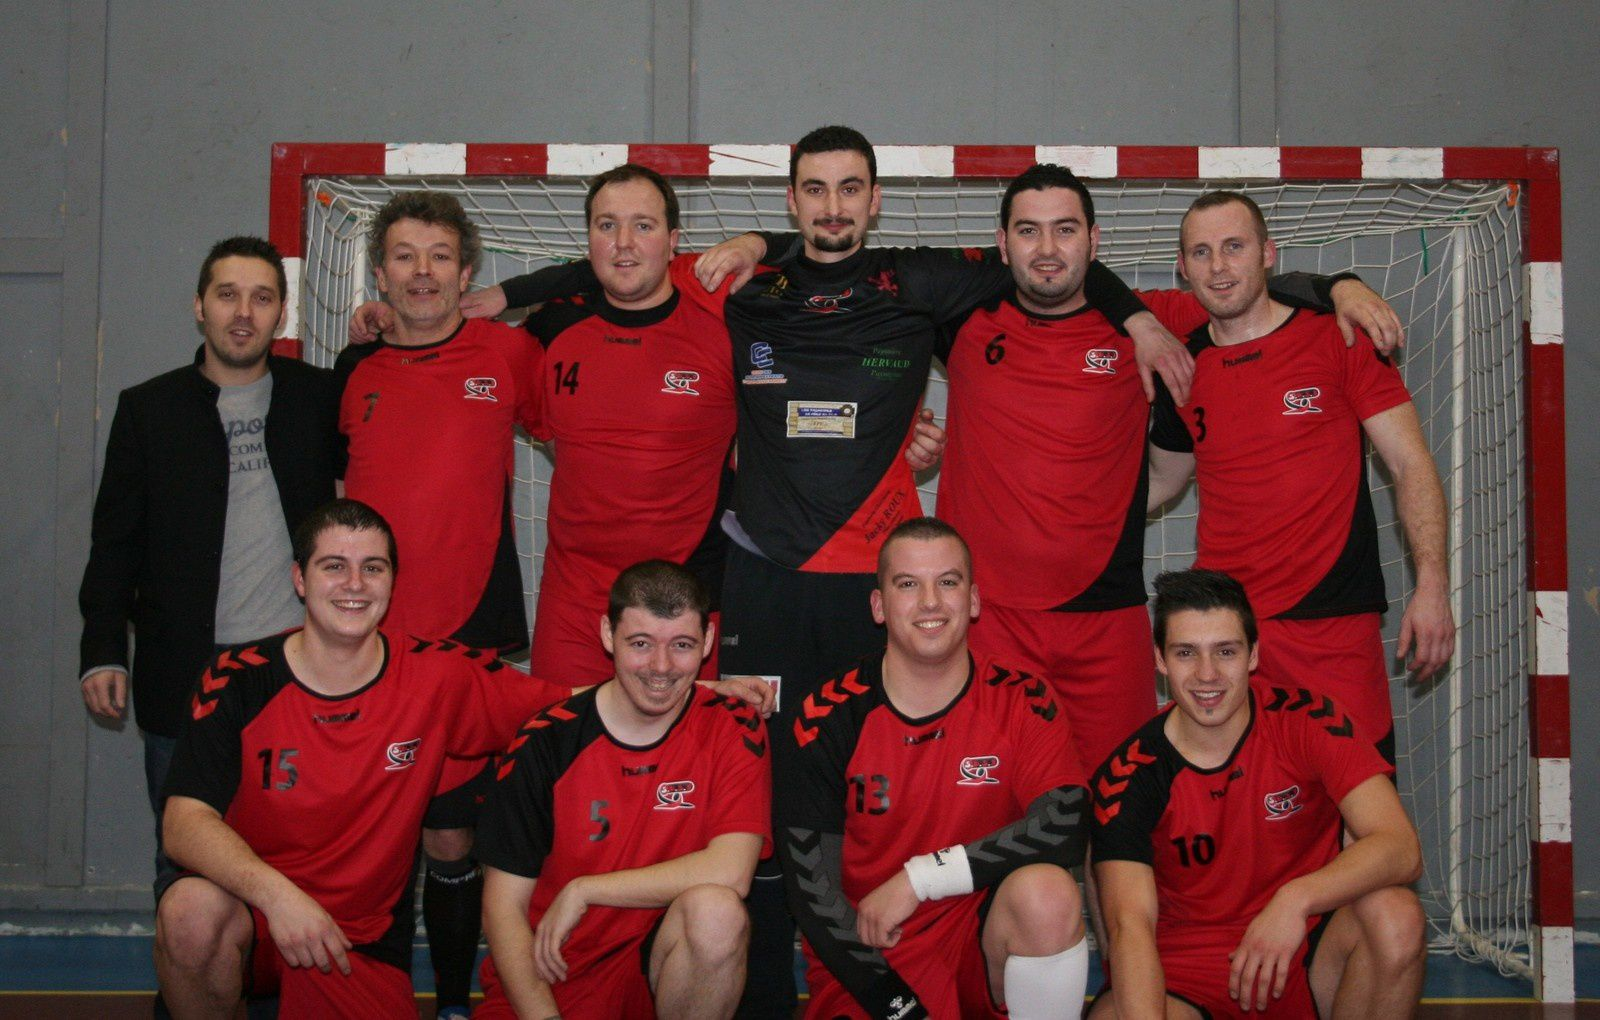 HAND BALL : Les victoires s'enchainent